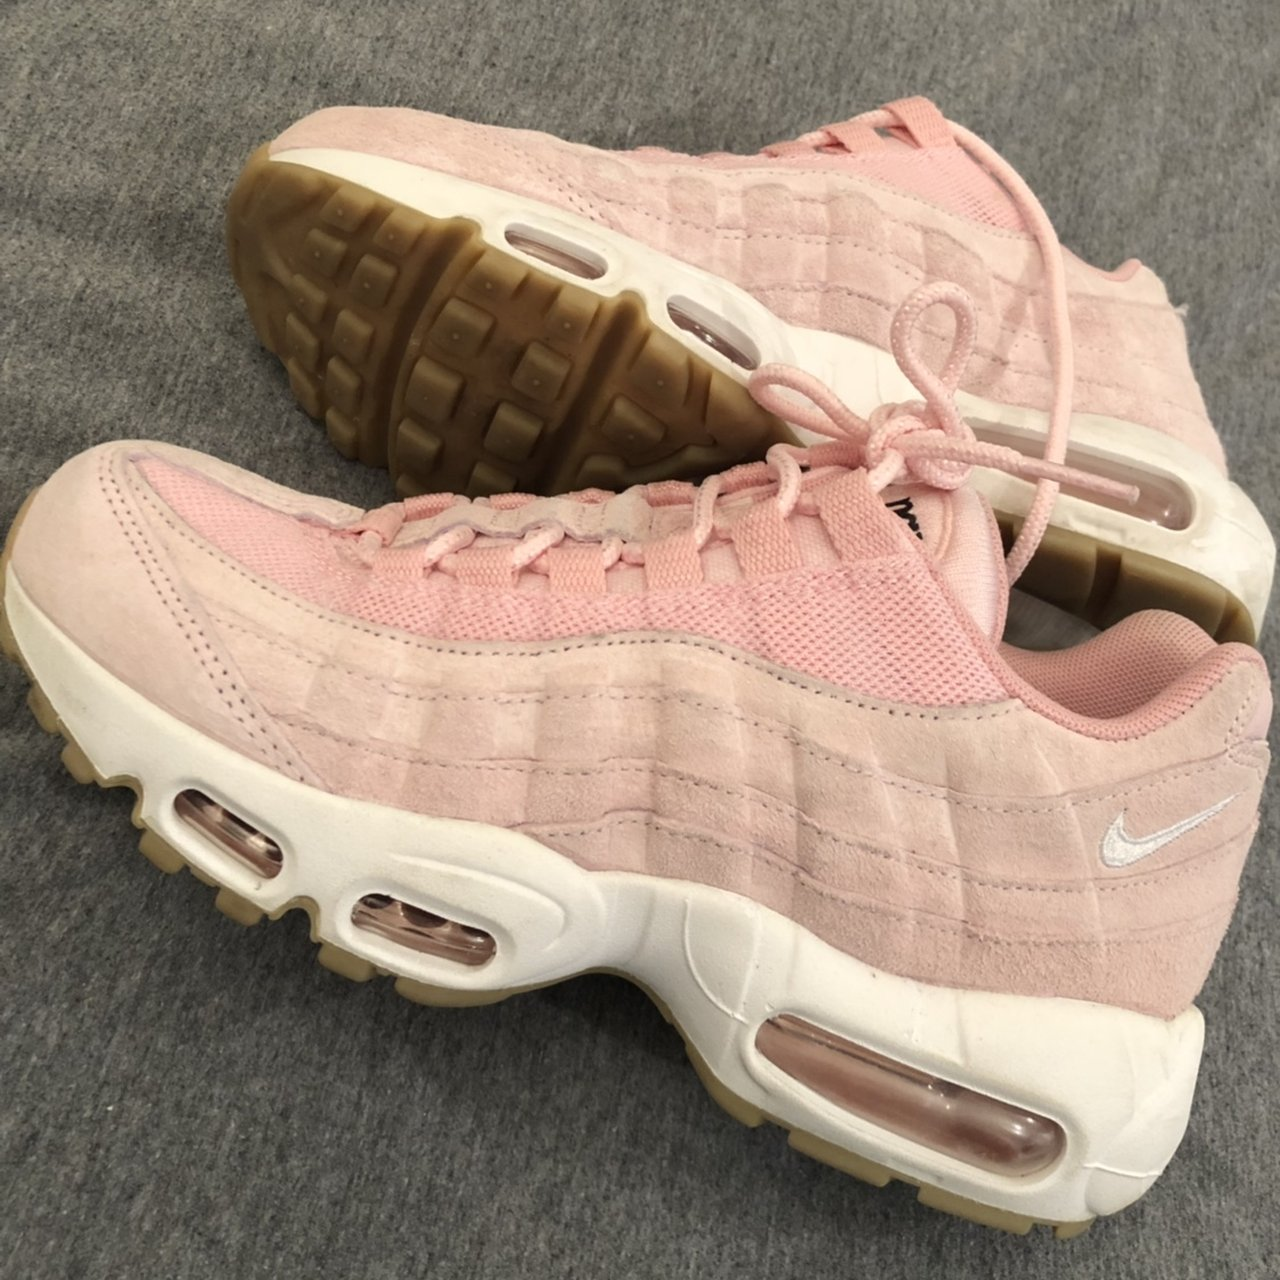 2a69004c07 Nike Air Max 95 Pink suede Worn two three times max Open - Depop nike air